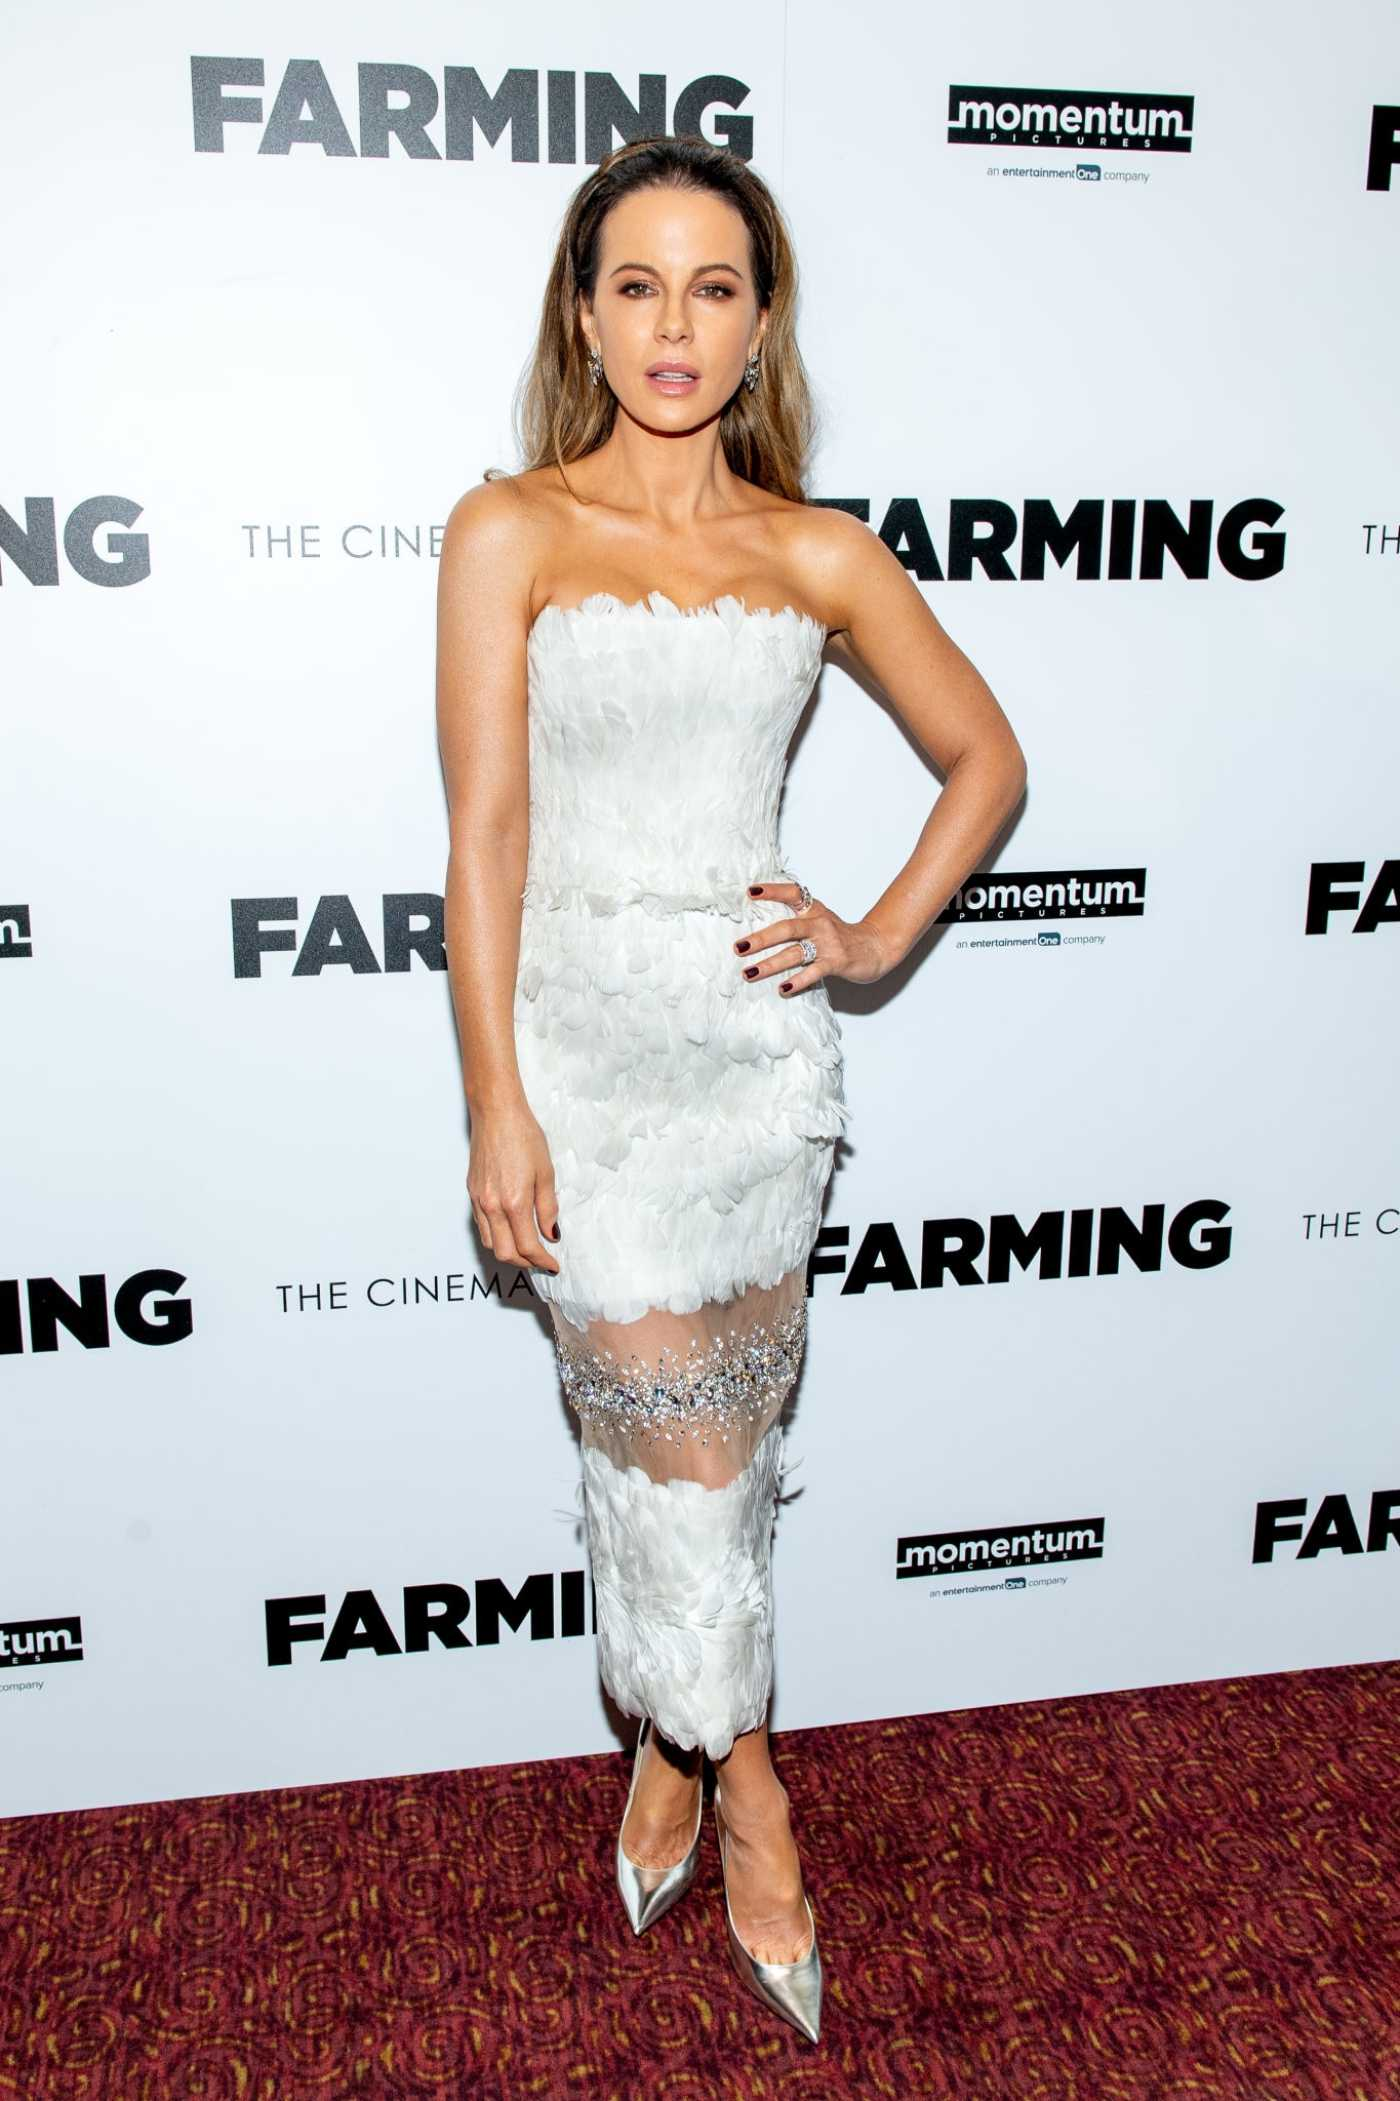 Kate Beckinsale Attends the Farming Premiere of  in New York 10/22/2019